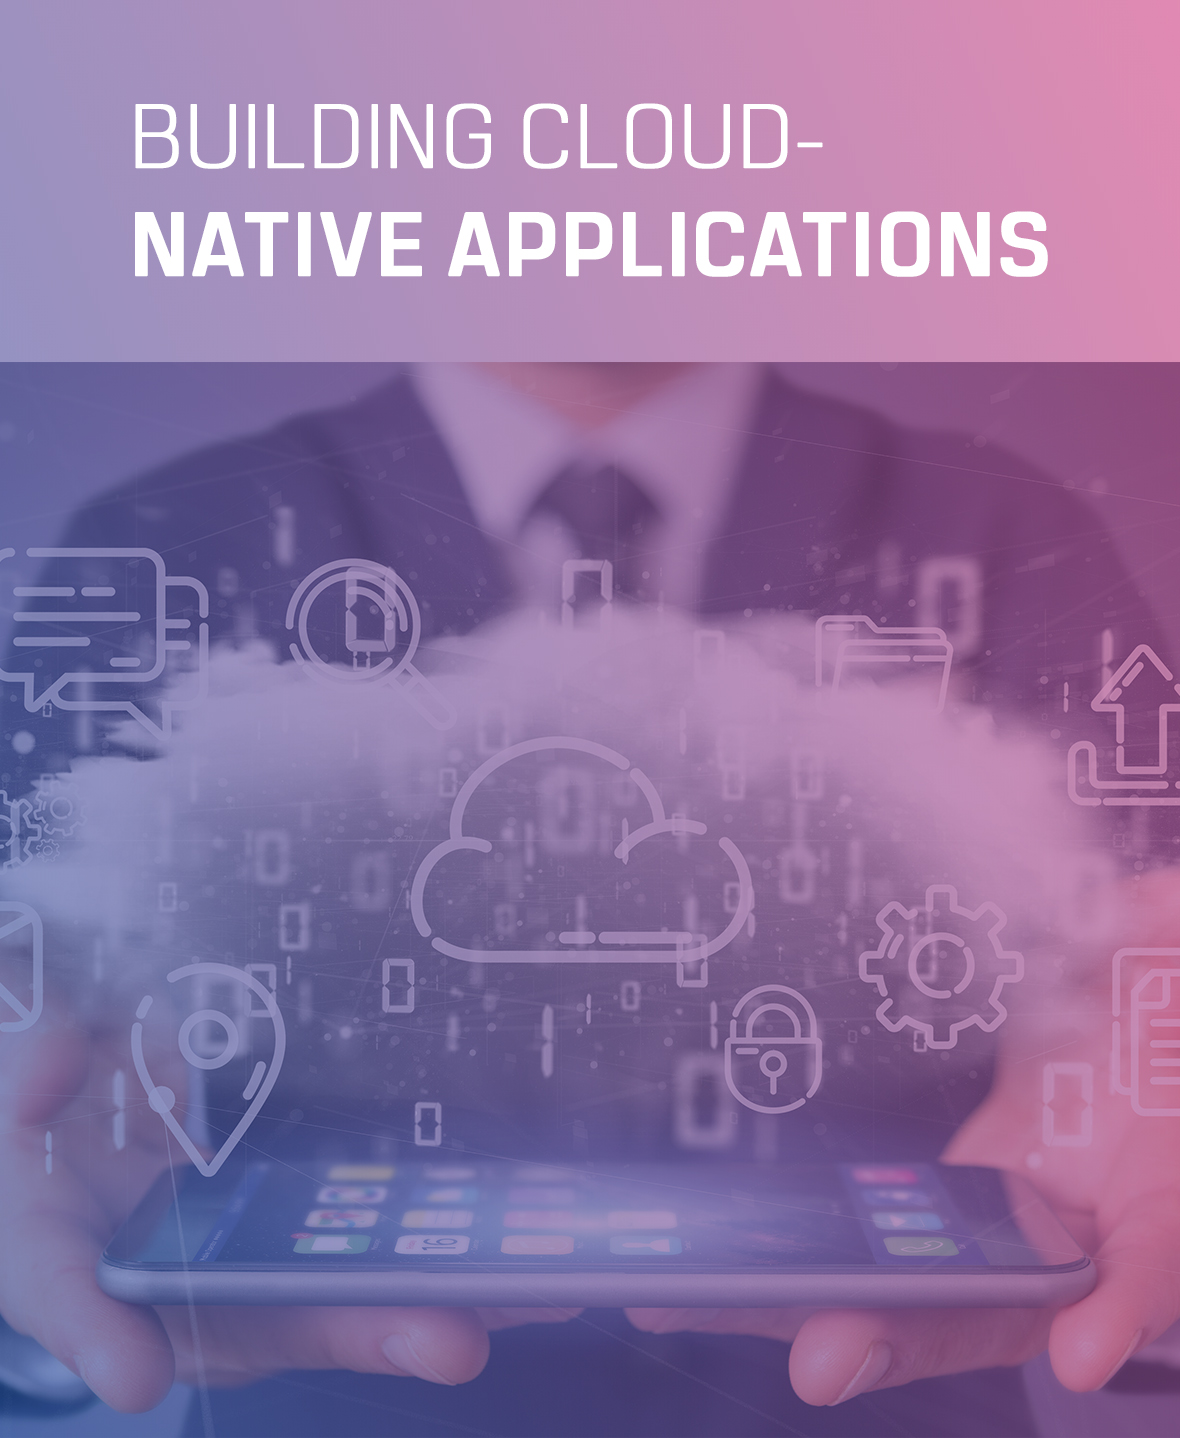 building cloud-native applications